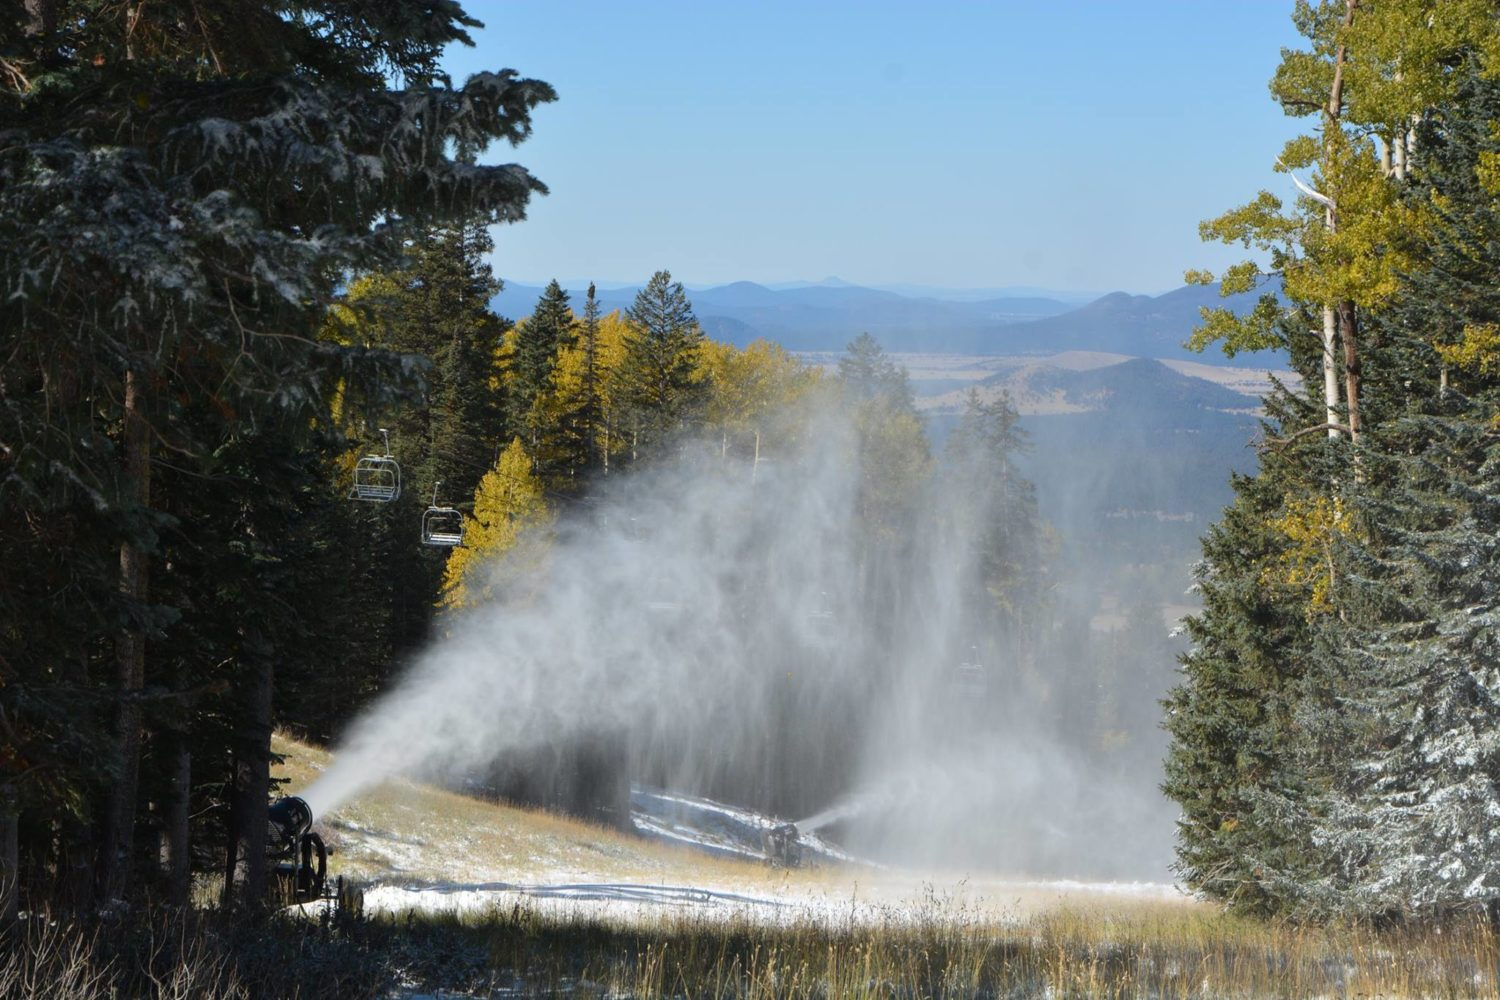 Treated groundwater is perfect for snowmaking, and it is sustainable